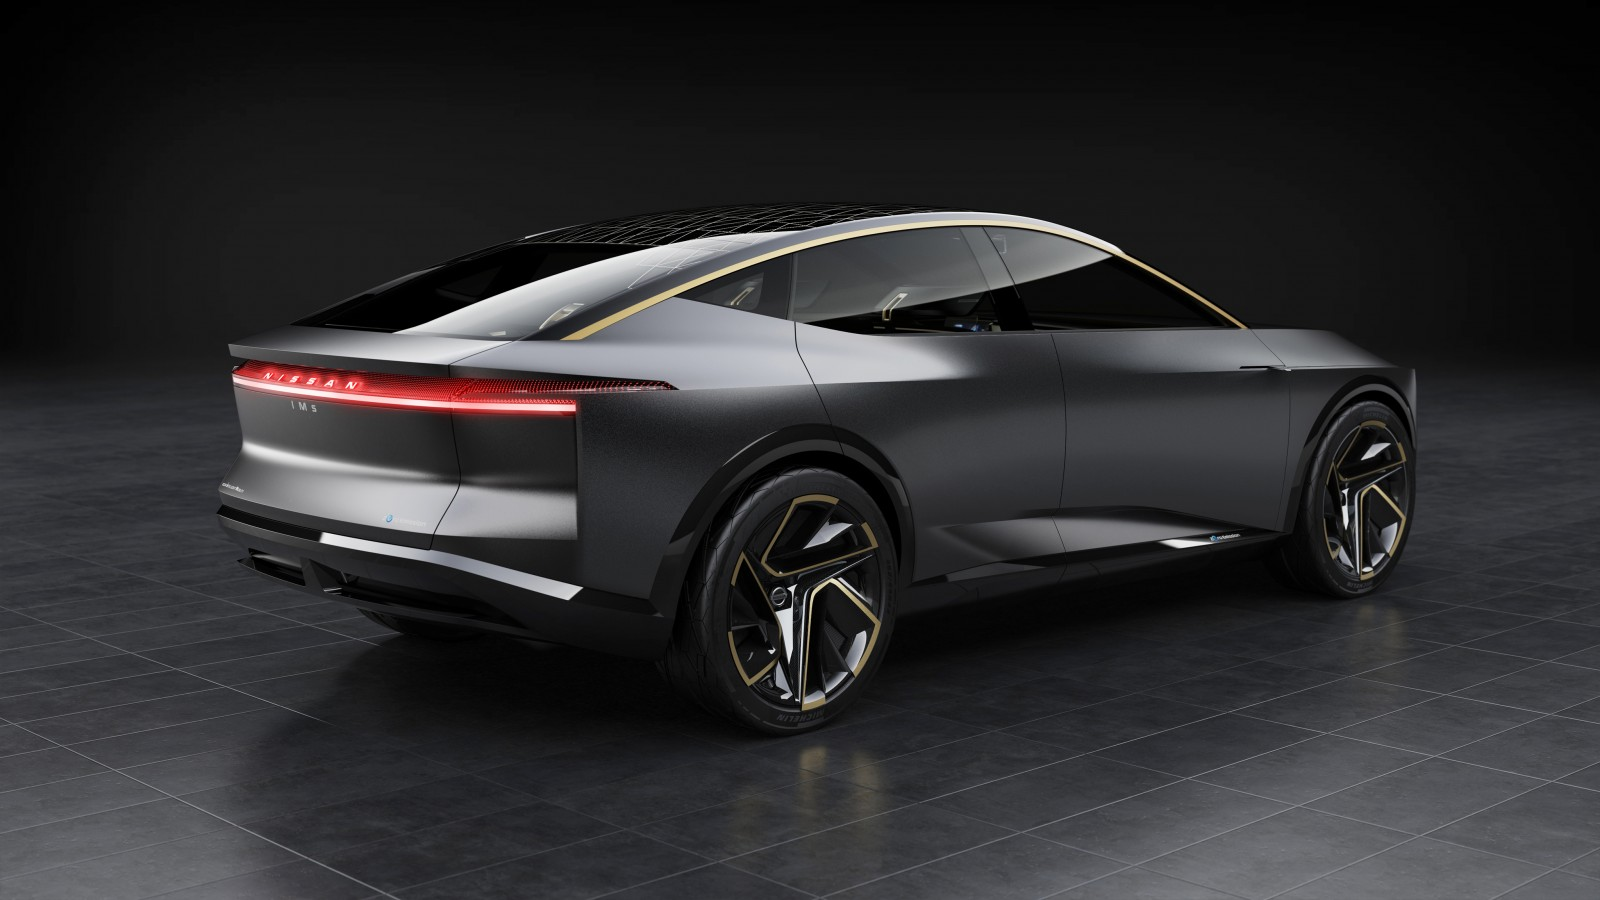 Nissan IMs Concept 2019 4K 3 Wallpaper | HD Car Wallpapers ...